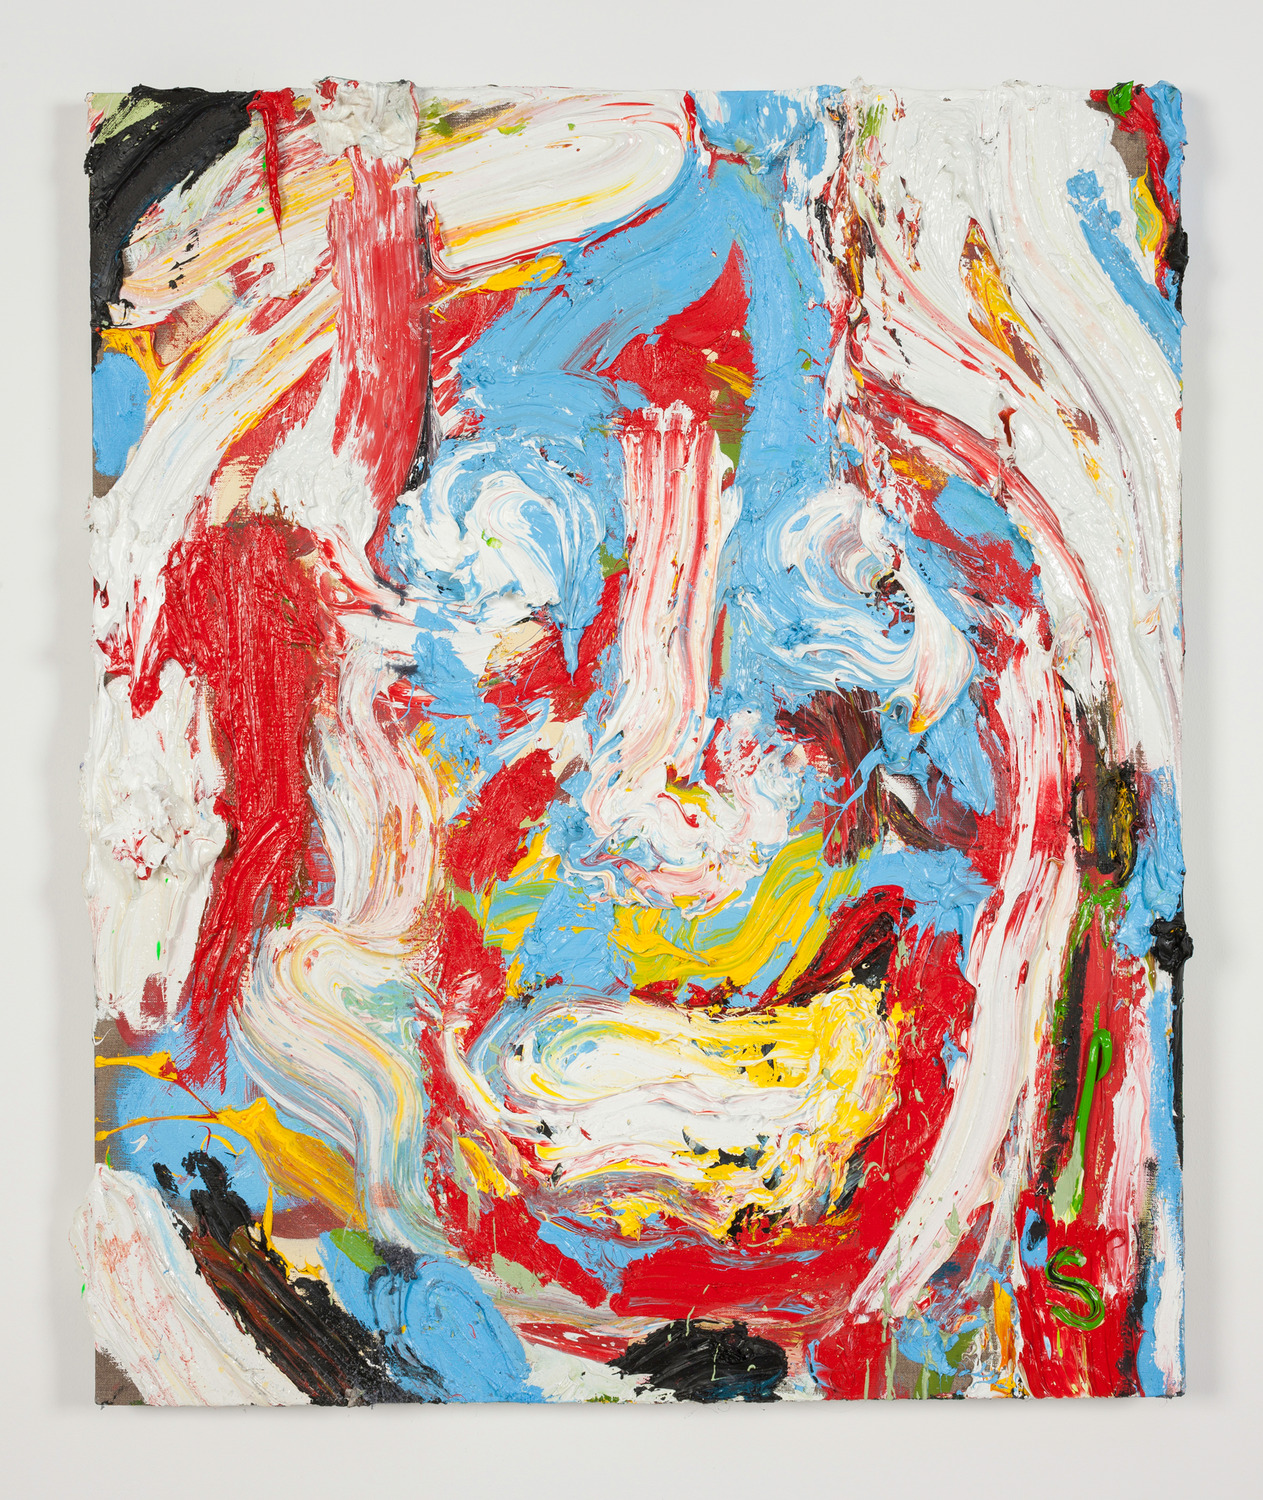 Face, 2014, Oil on linen, 92 x 81.5 x 9 cm